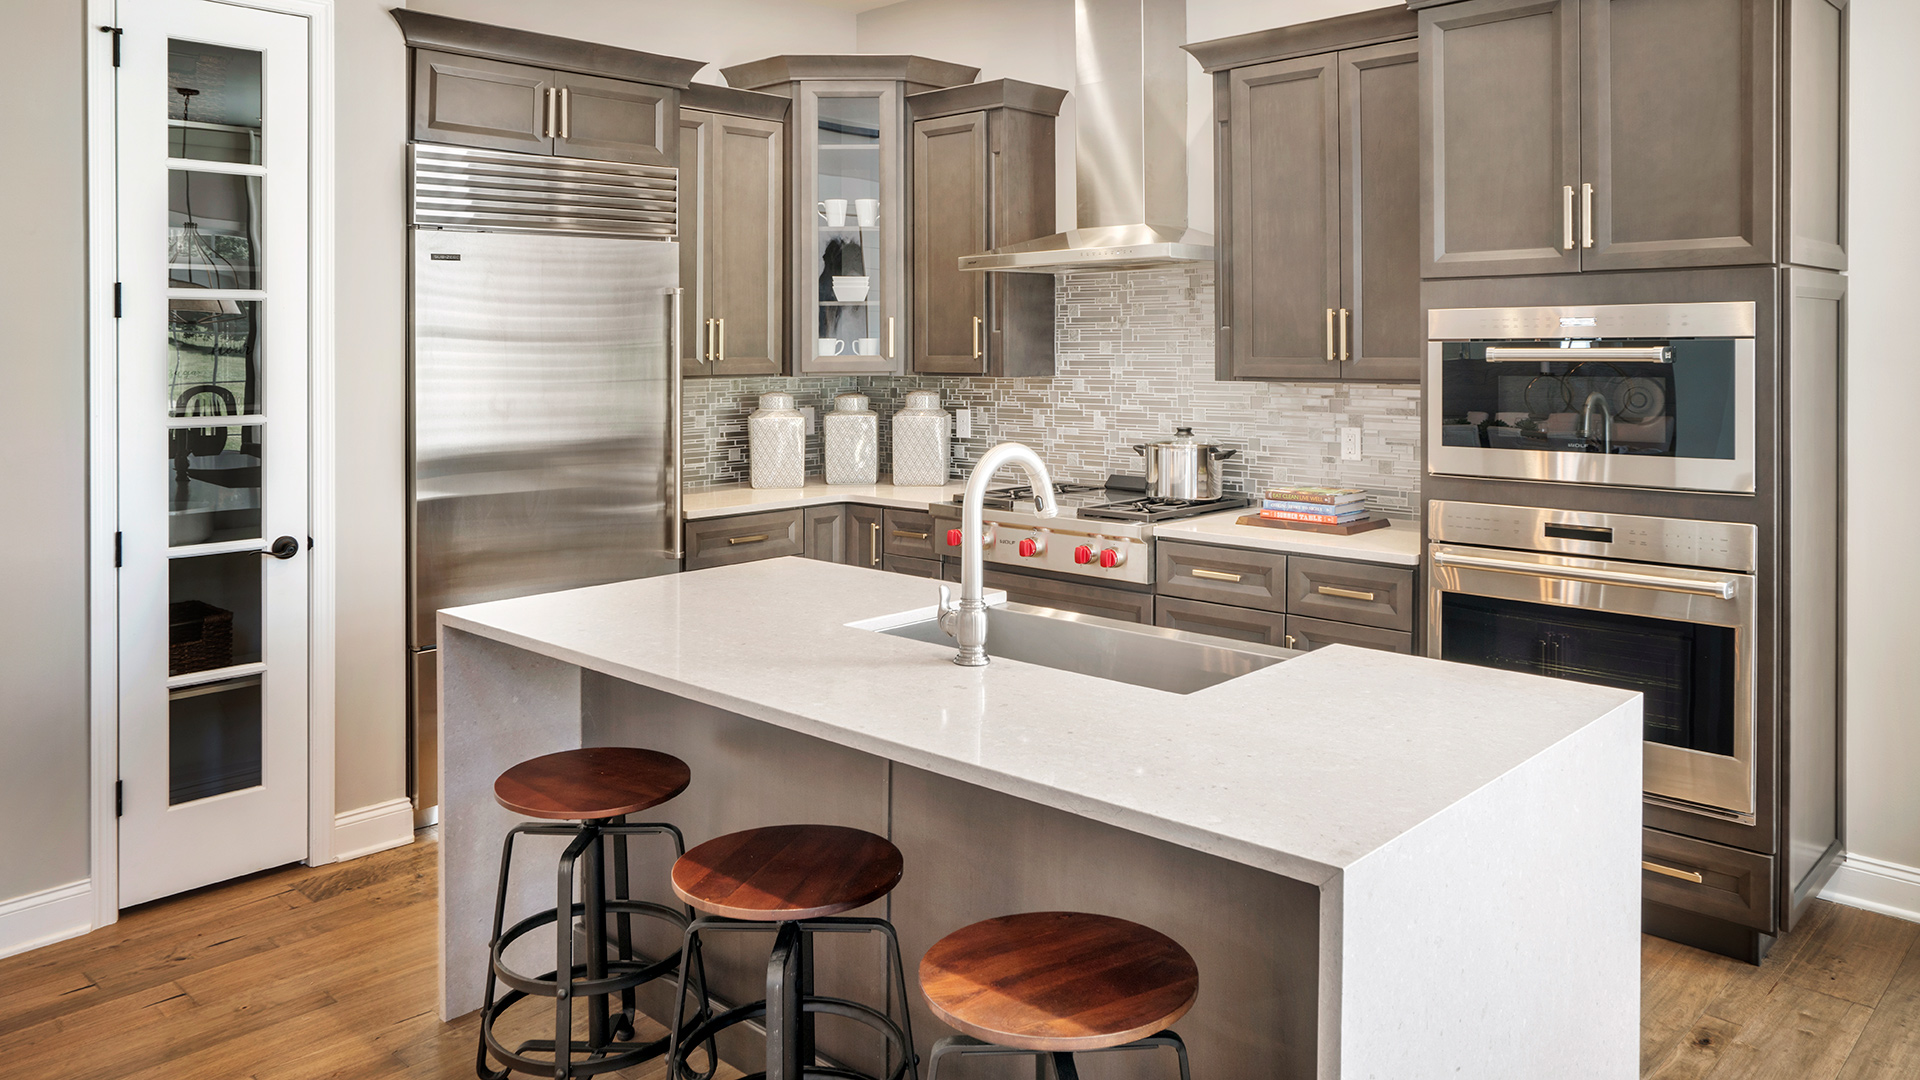 Well-appointed kitchen overlooks great room, a layout perfect for entertaining